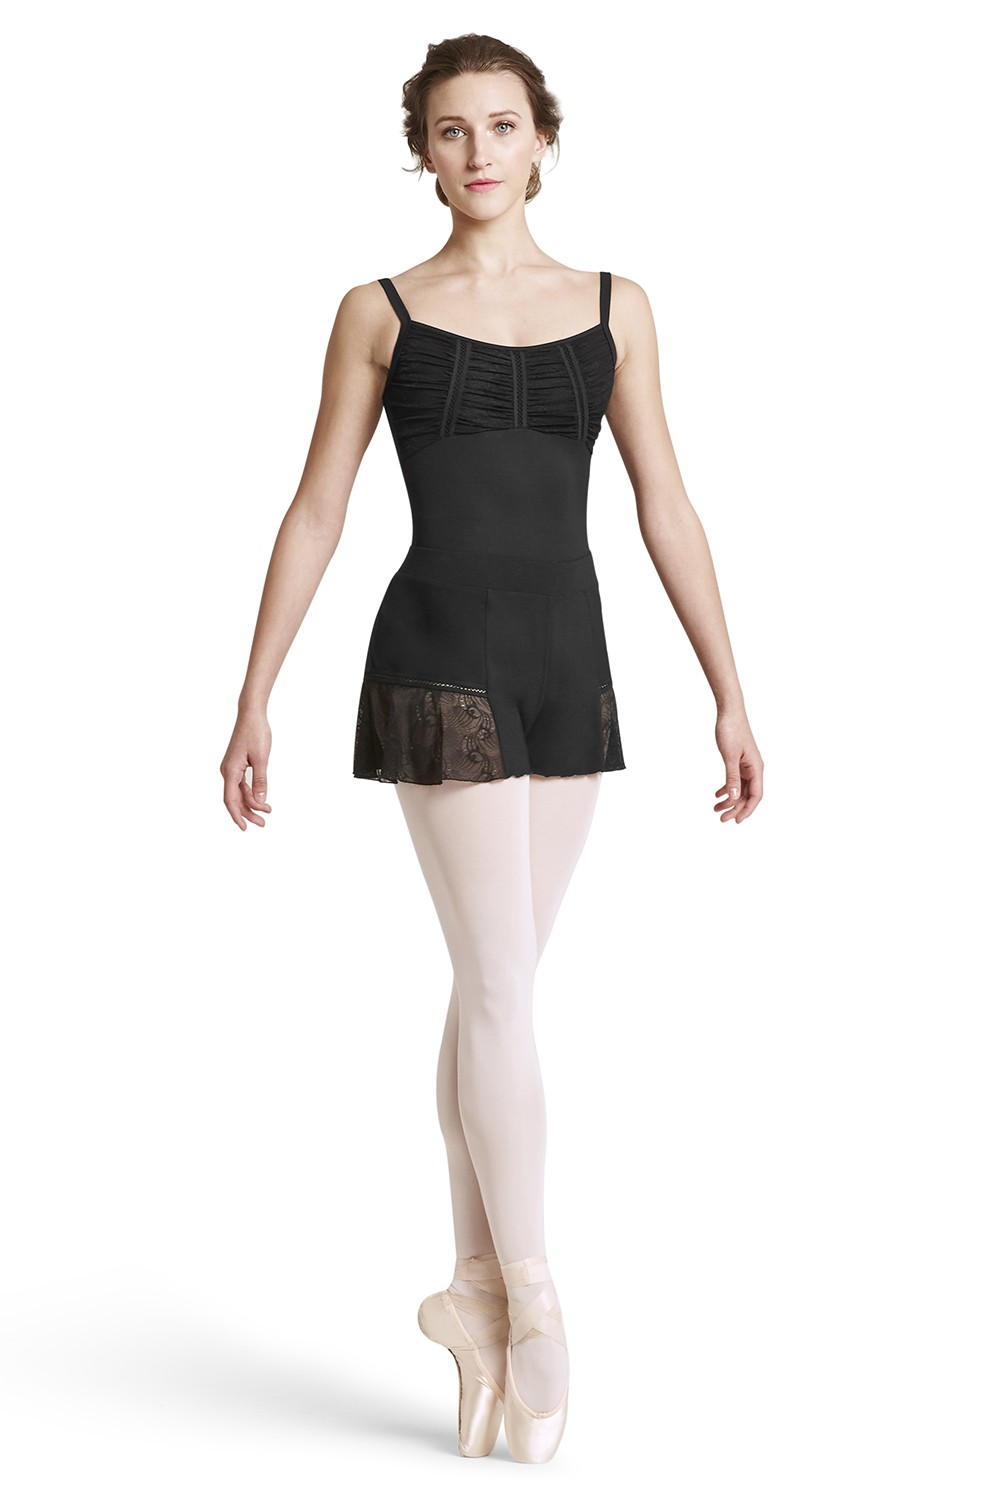 Tana - Tween Children's Dance Leotards